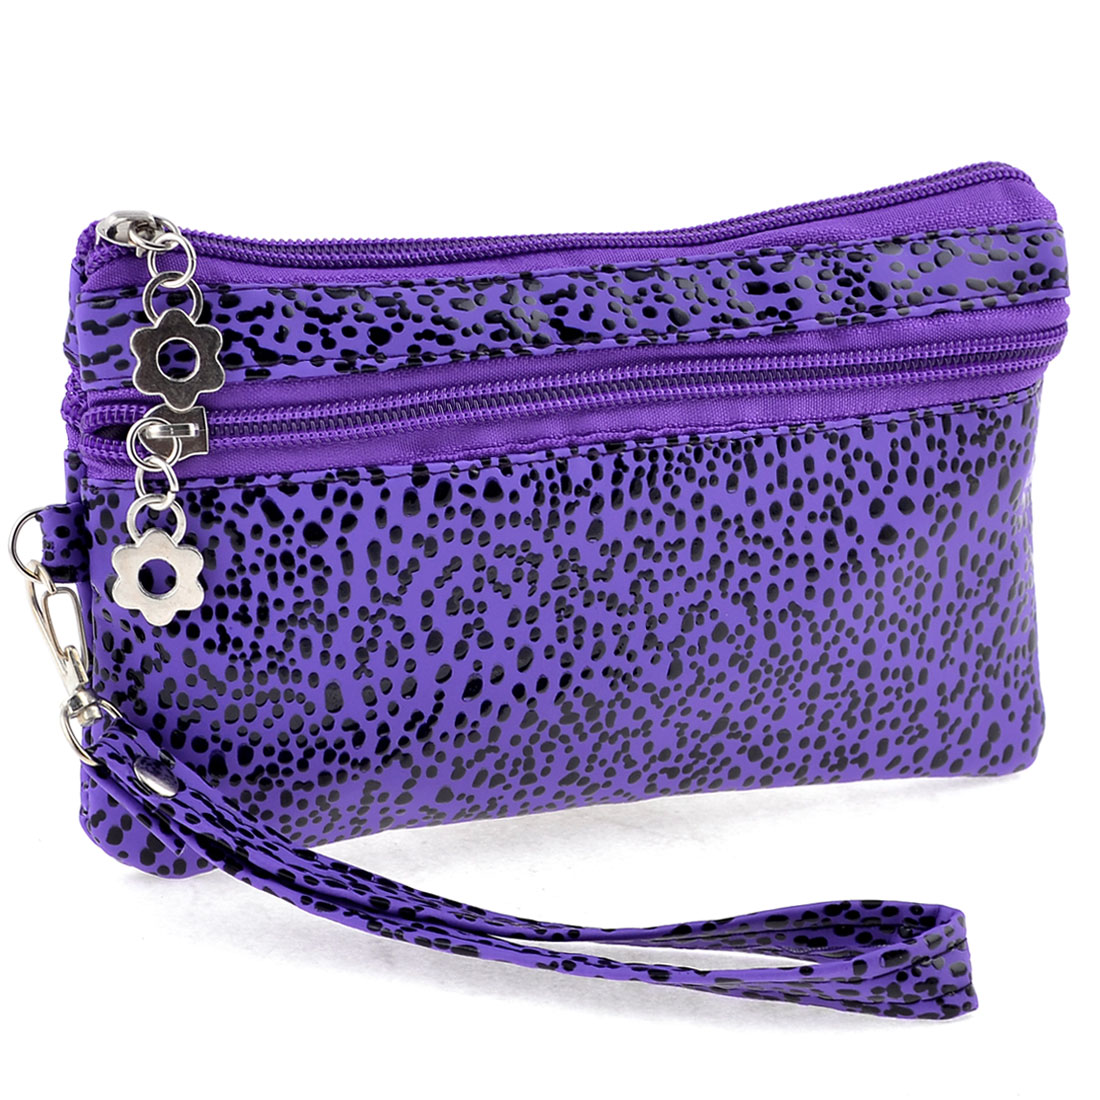 Dots Pattern Nylon Lining Zipper Purse Handbag Purple Black for Ladies